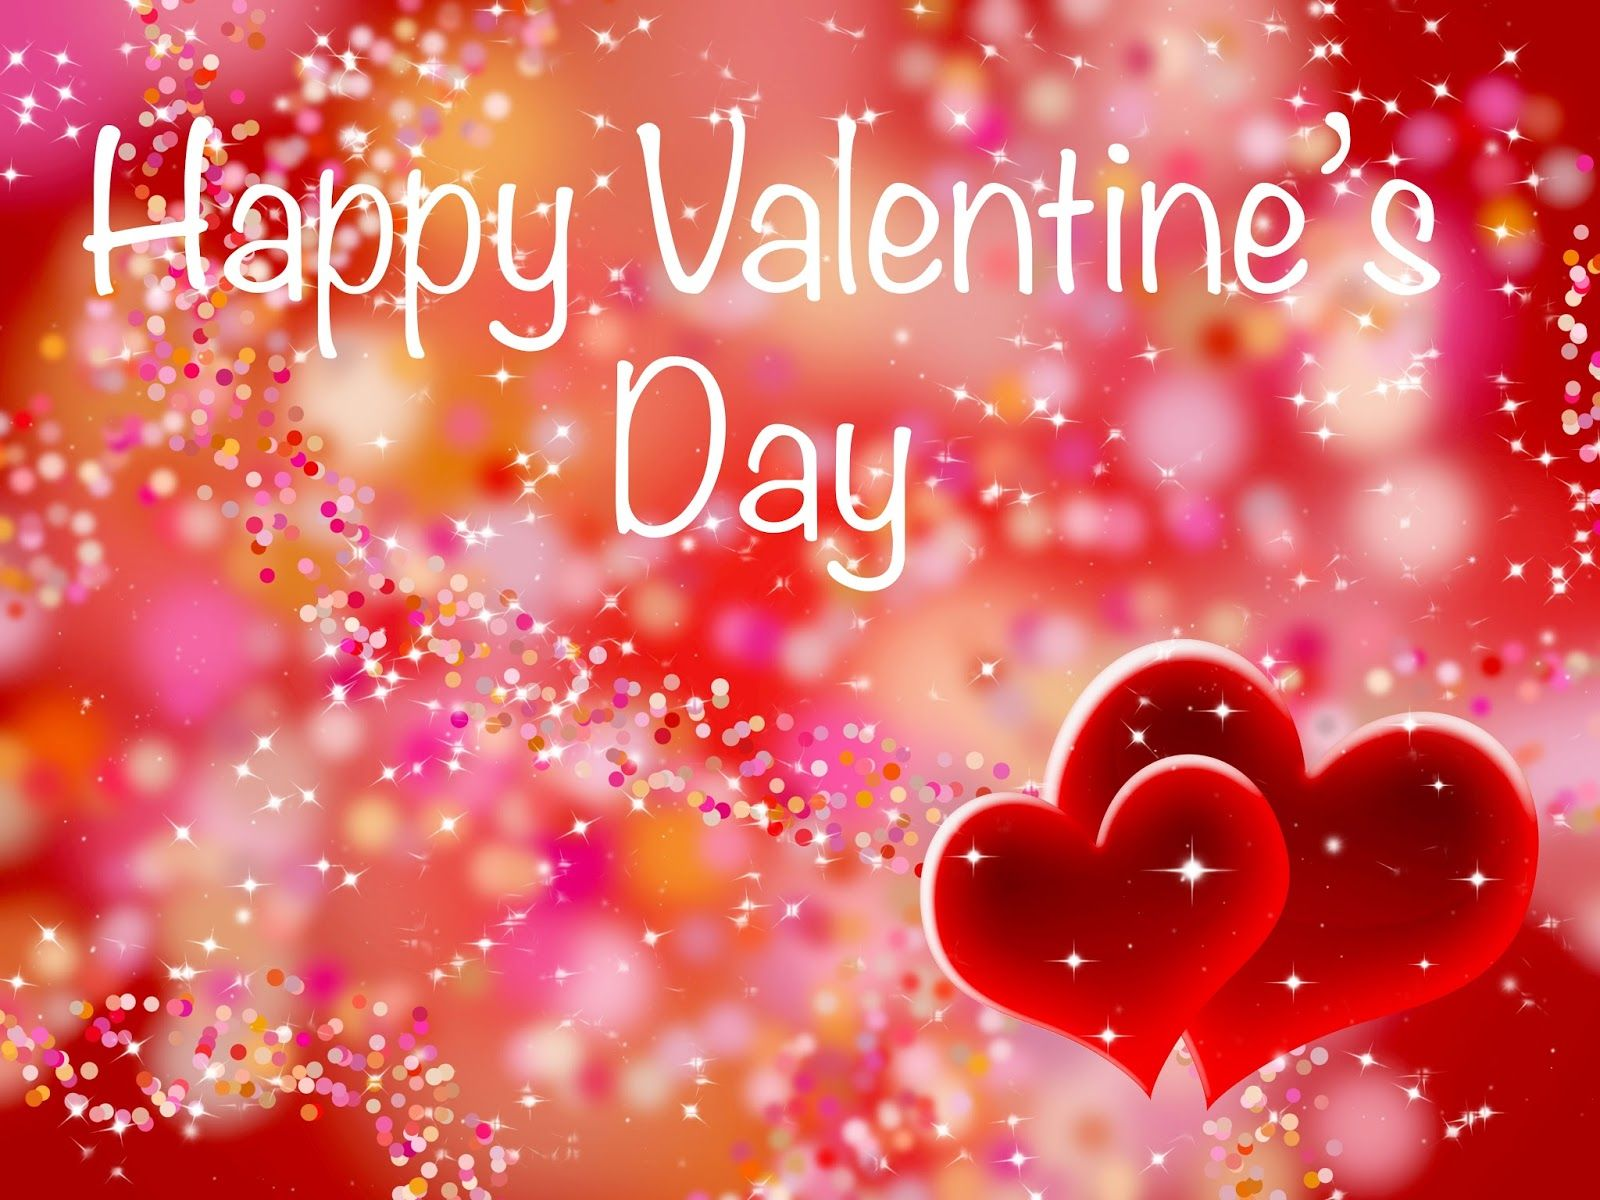 Happy Valentines day images pictures, wallpapers, Photos for facebook, wh… | Happy valentines day pictures, Happy valentines day images, Happy valentines day wishes